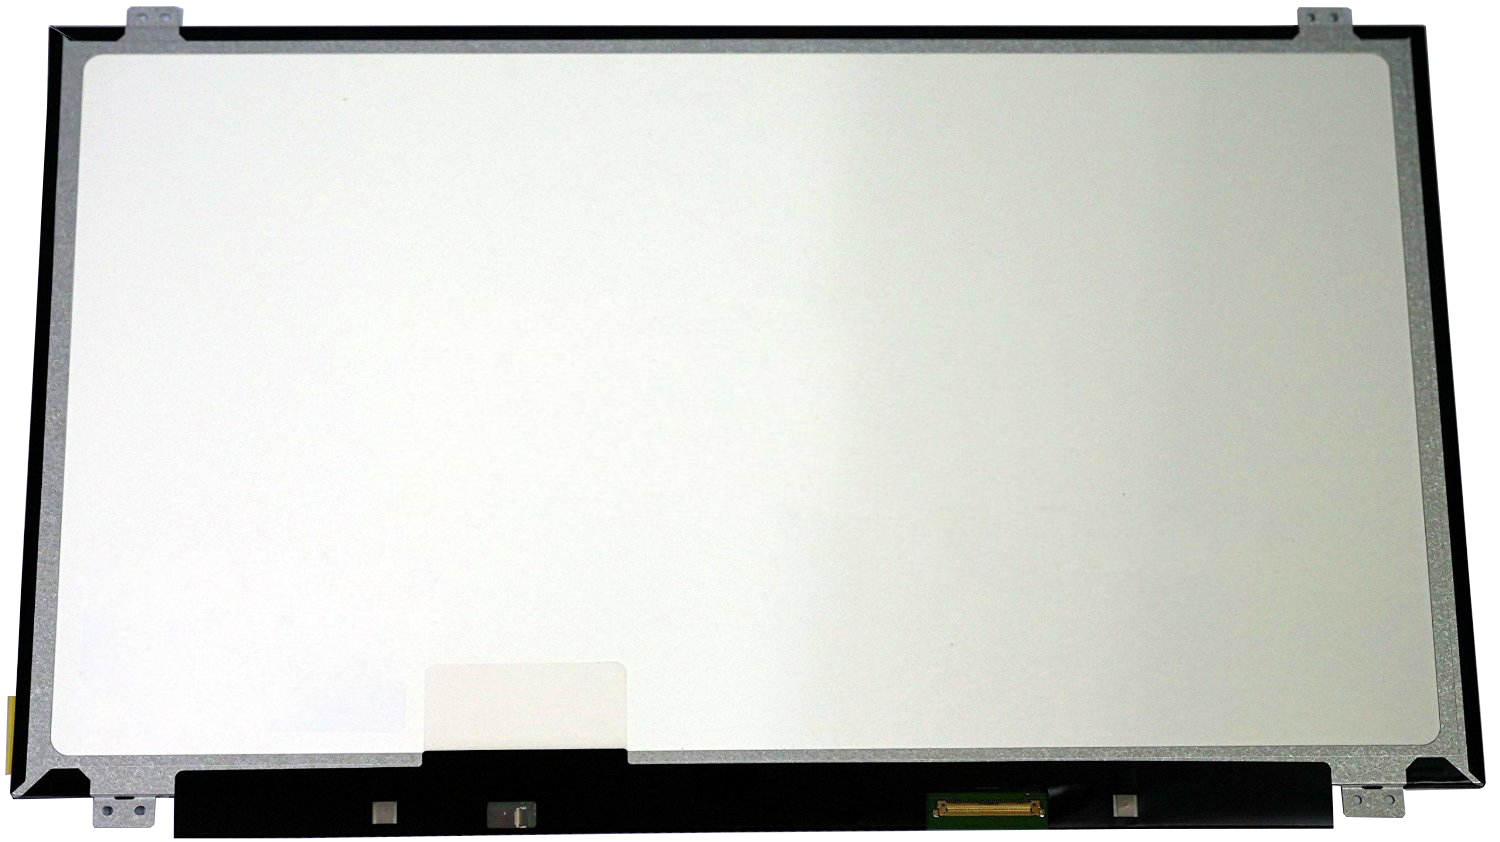 QuYing Laptop LCD Screen for ACER ASPIRE E1-510 E1-532G E1-572G E1-530G E5-551 E5-551G E5-571 SERIES (15.6 inch 1366x768 30pin) quying laptop lcd screen for acer extensa 5235 as5551 series 15 6 inch 1366x768 40pin tk